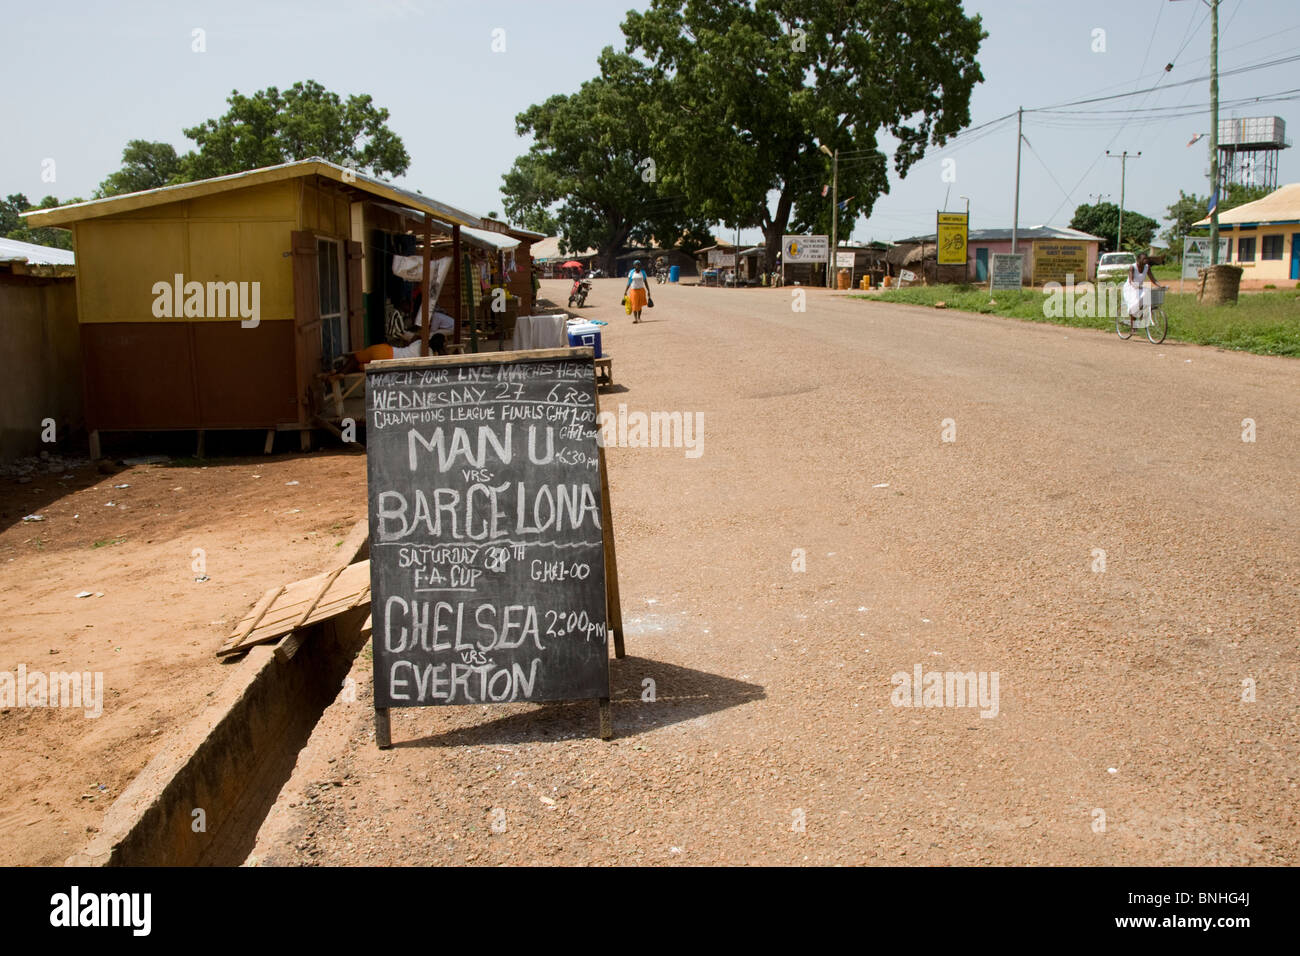 Advertisement for a bar in a small town in rural Ghana, showing the Champions League final and FA Cup final in 2009. - Stock Image